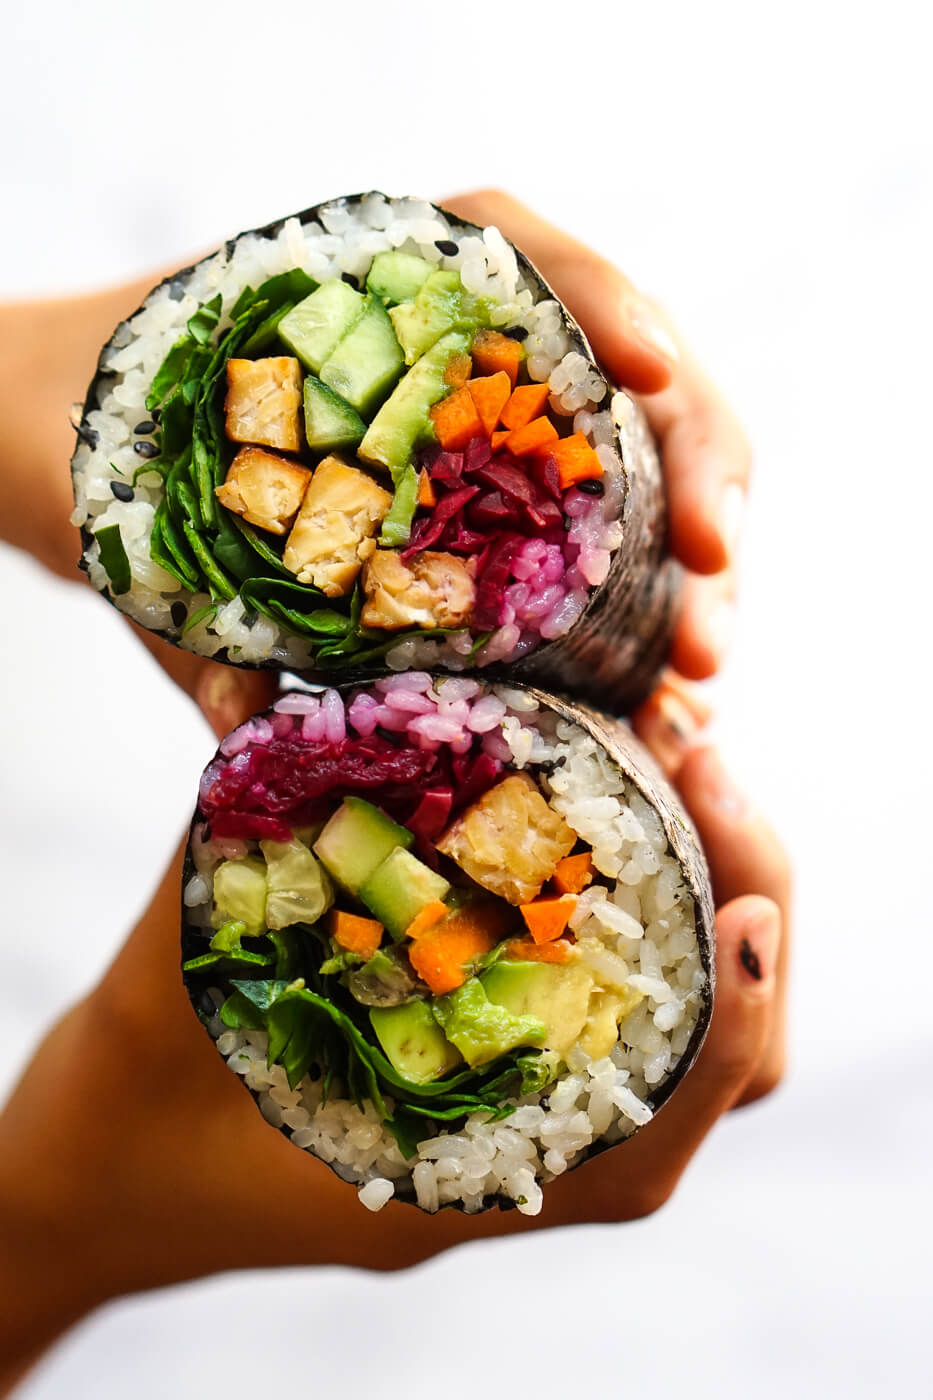 Photograph of hands holding two halves of a sushi burrito filled with vegetables and tempeh.